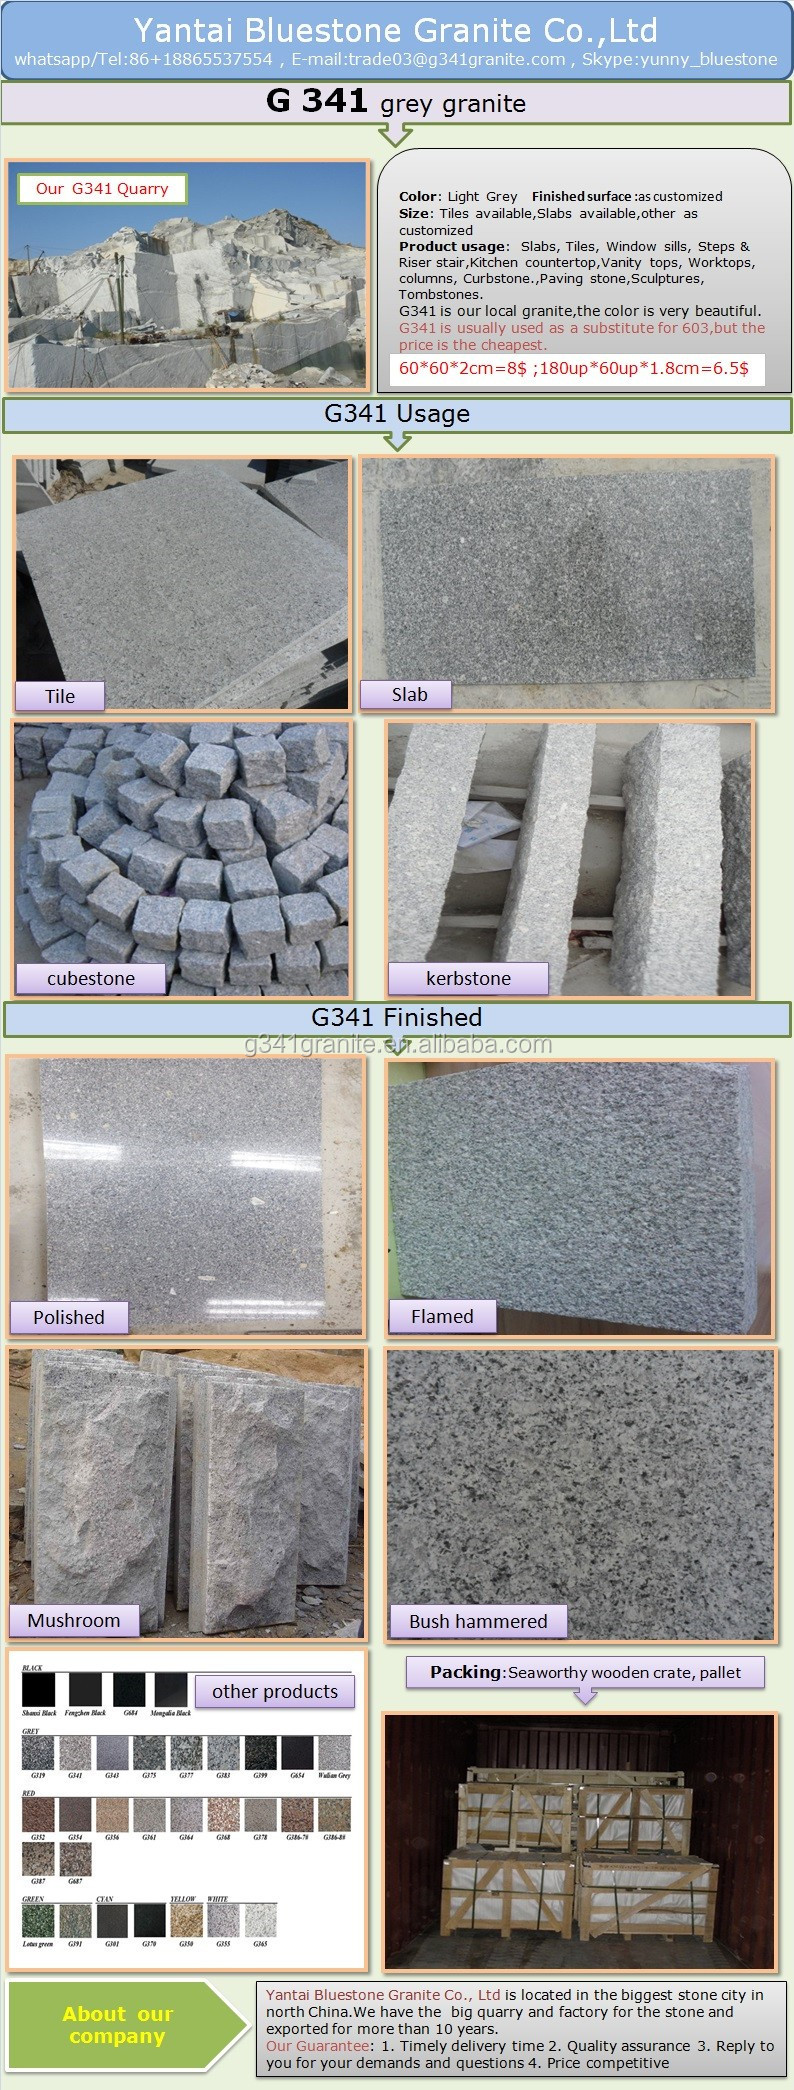 River white granite price - Granite White Granite Colors River White Granite Price